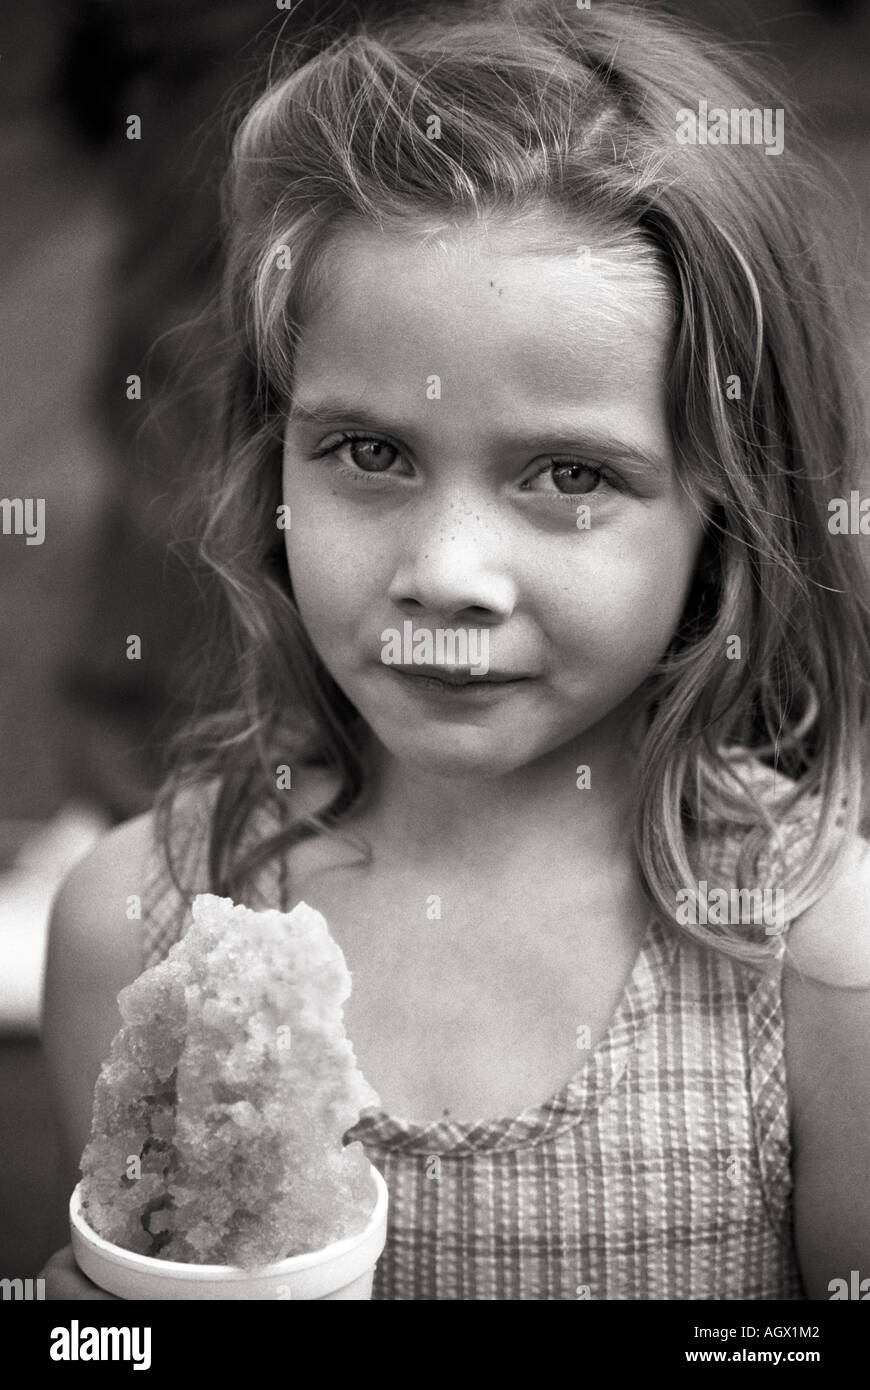 girl holding a snow cone on a summer day. - Stock Image